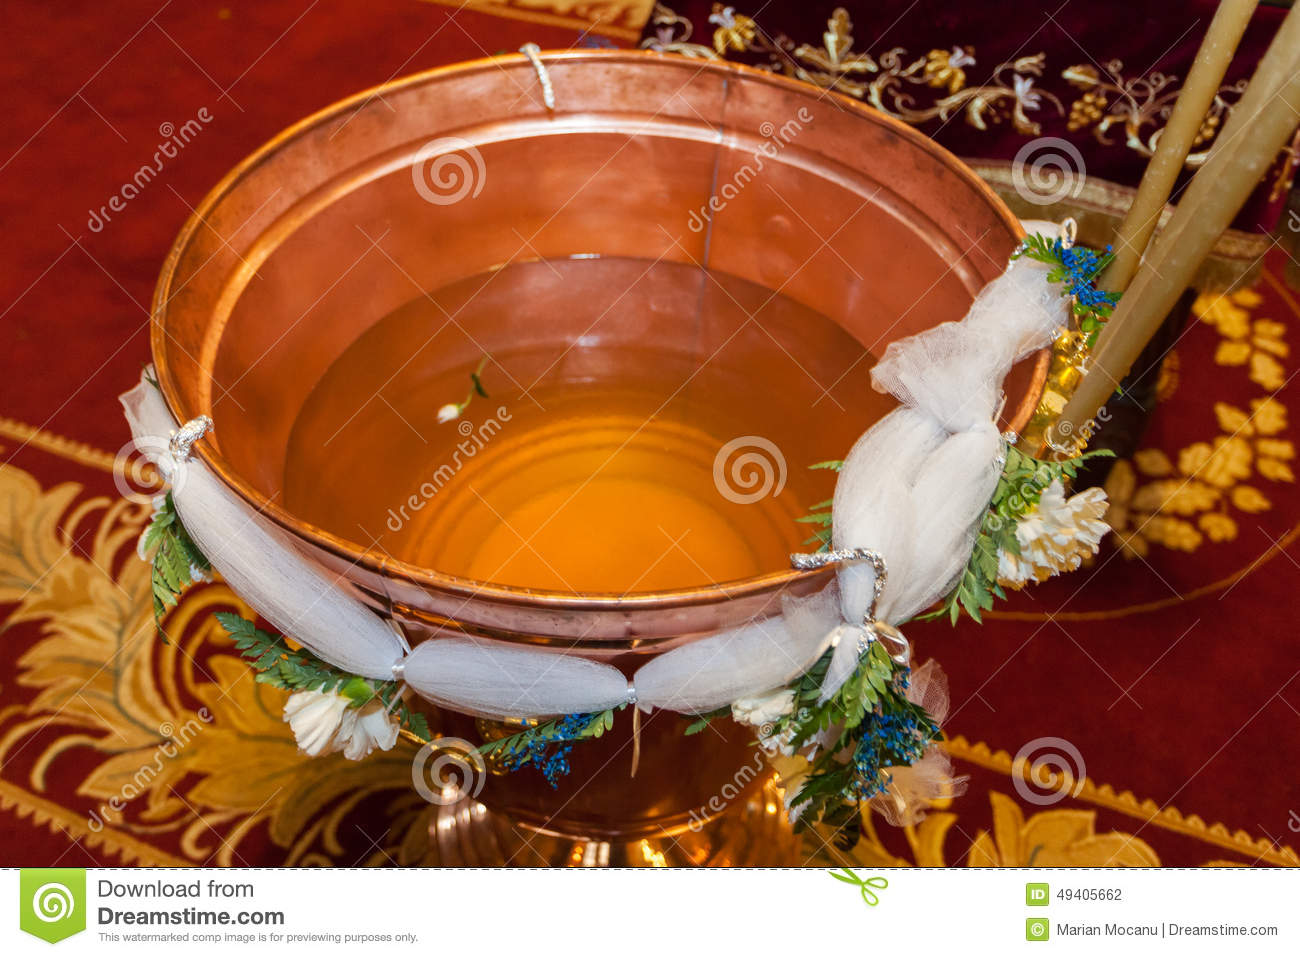 Baptismal font of holy water